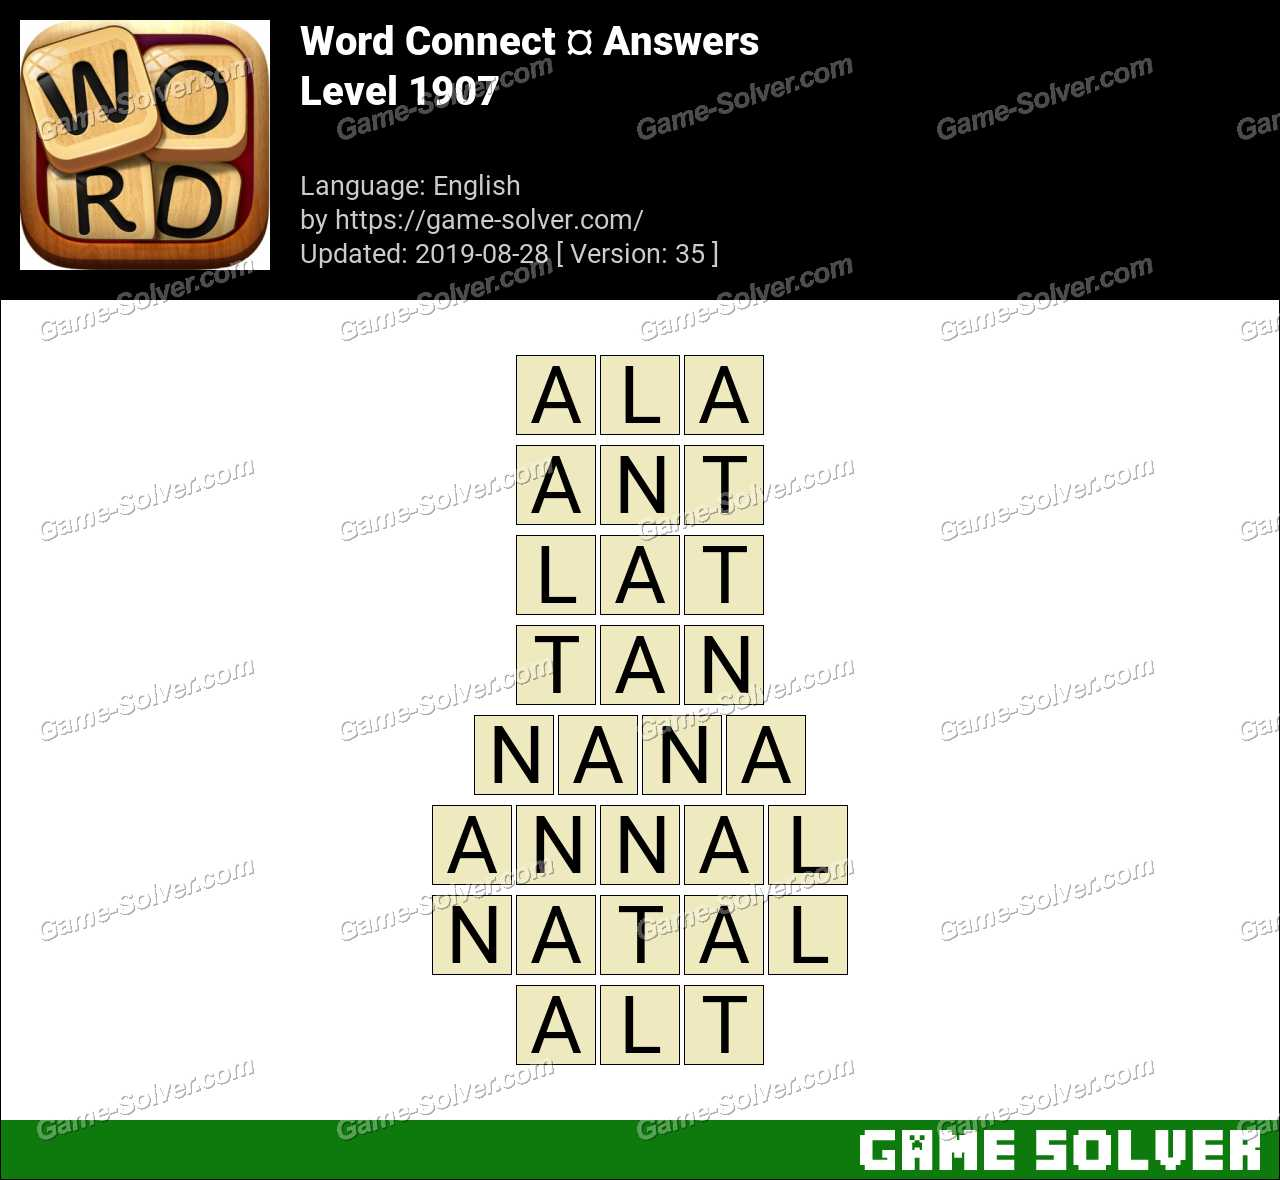 Word Connect Level 1907 Answers